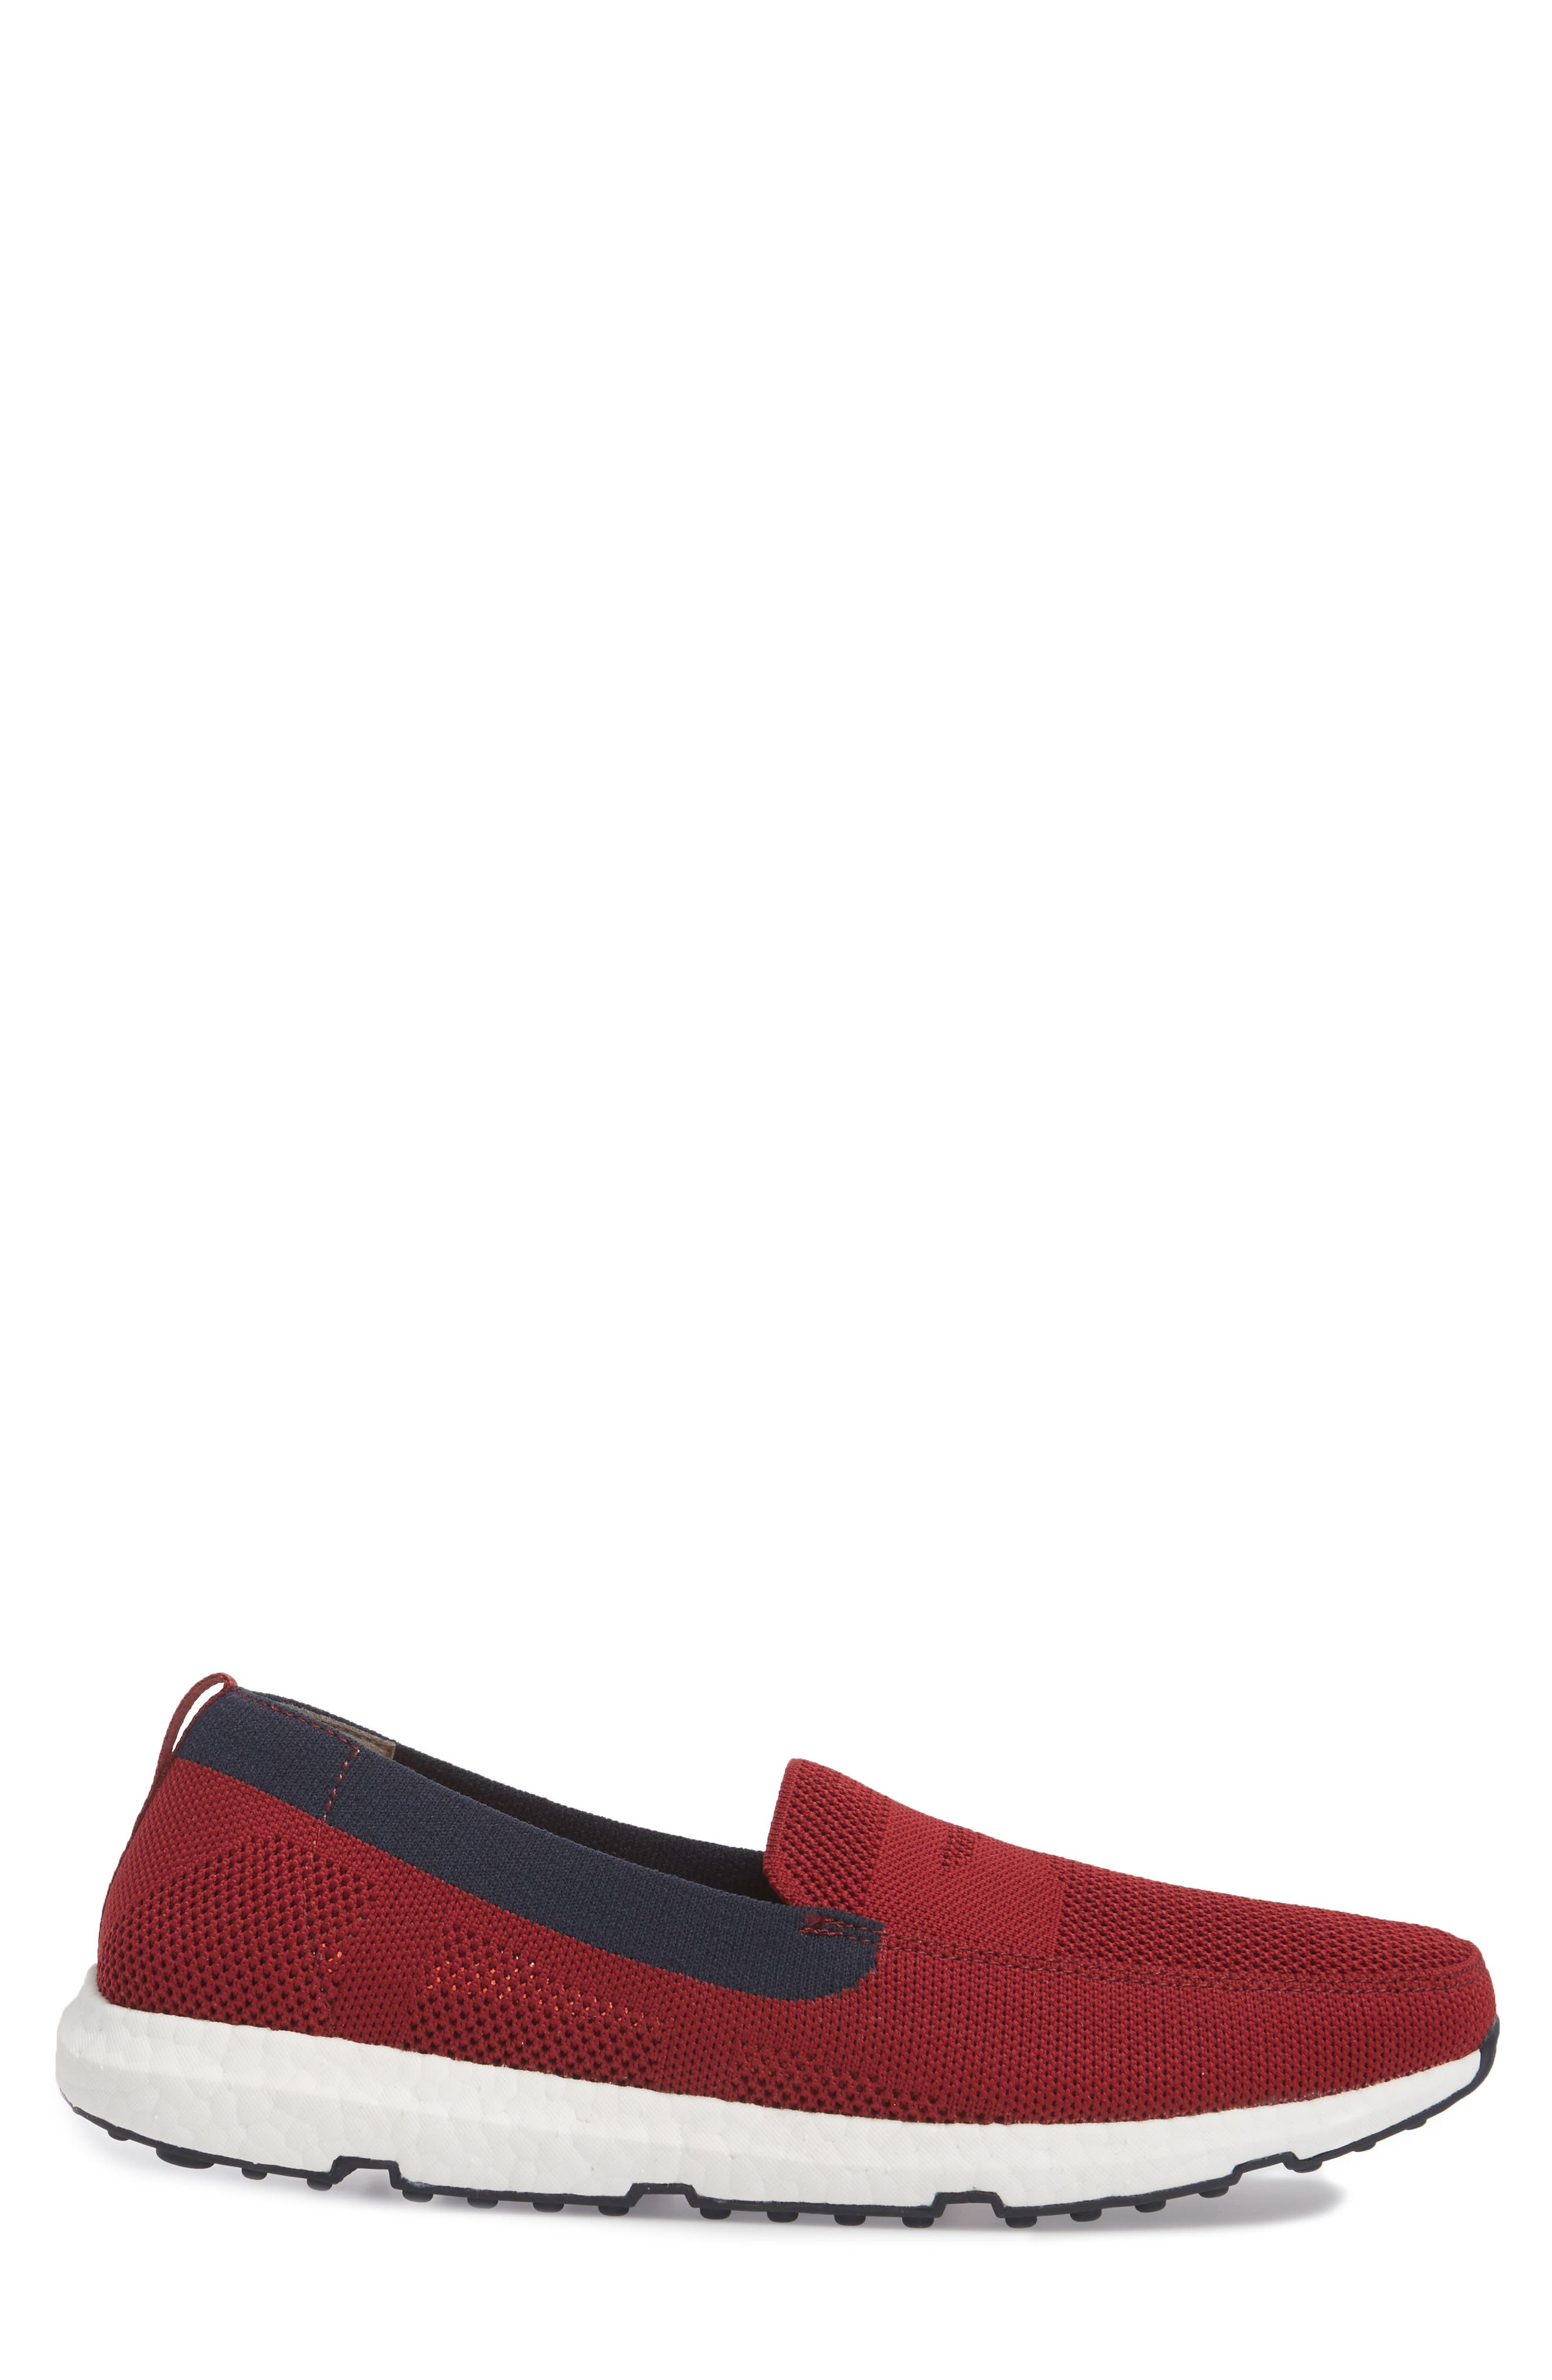 Breeze Leap Penny Loafer,                             Alternate thumbnail 3, color,                             Deep Red/ Navy